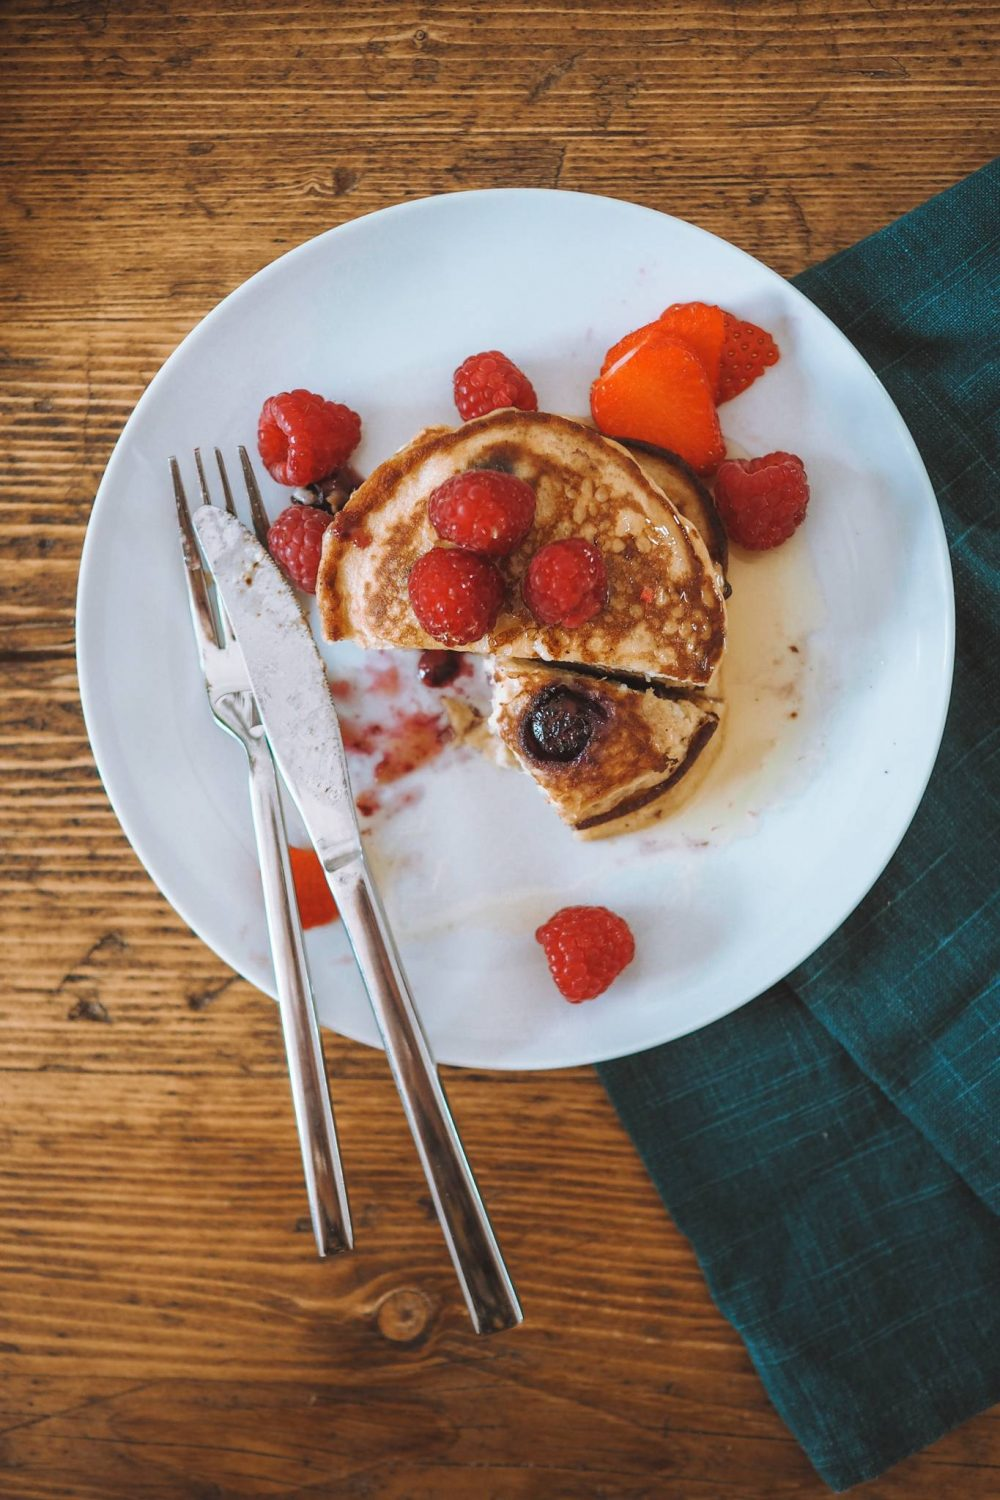 A plate of banana pancakes with raspberries topped with honey